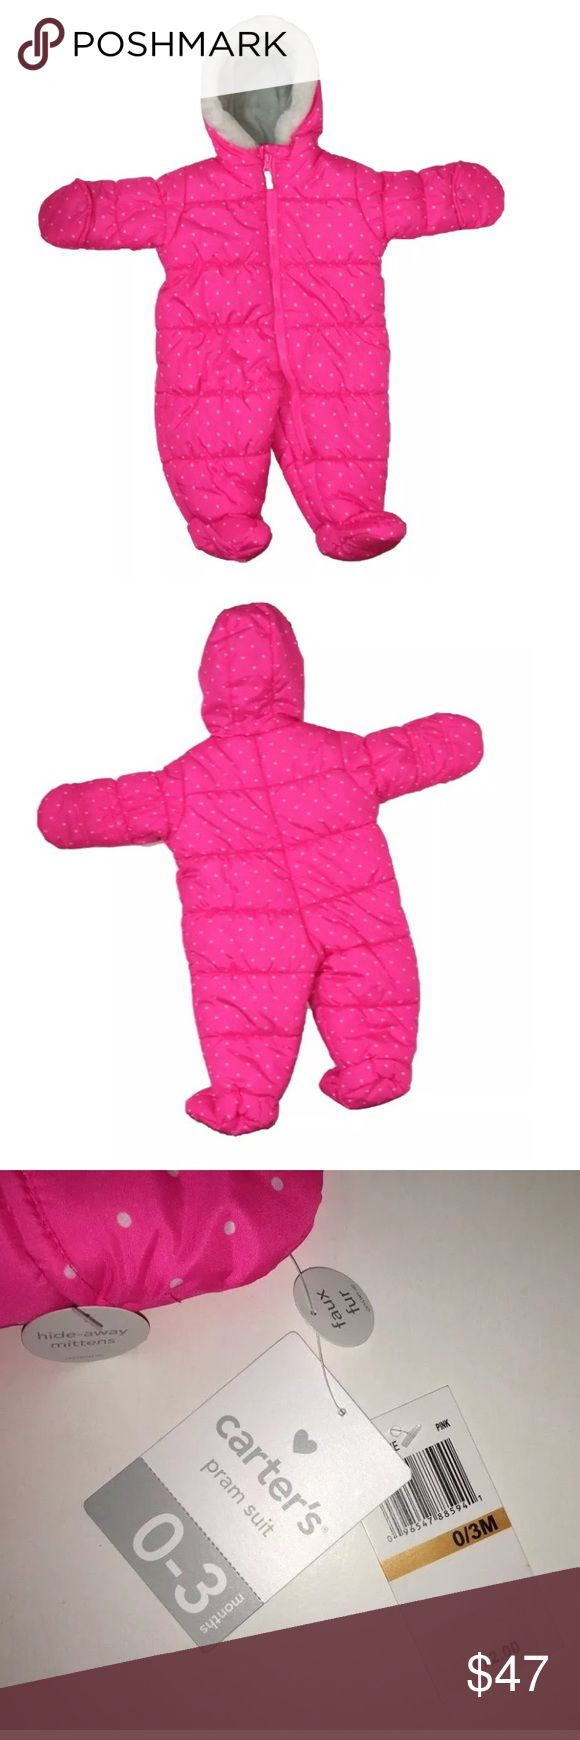 🆕 Carters Snowsuit Pink Pram Size 0-3 Month WILL ACCEPT ALL REASONABLE OFFERS  Shoulder to Bottom: 21  inches Armpit to end of Sleeve: 7 3/4 inches Armpit to Armpit: 12 1/2 inches  RN# 15101  Inventory # U5 Carter's One Pieces